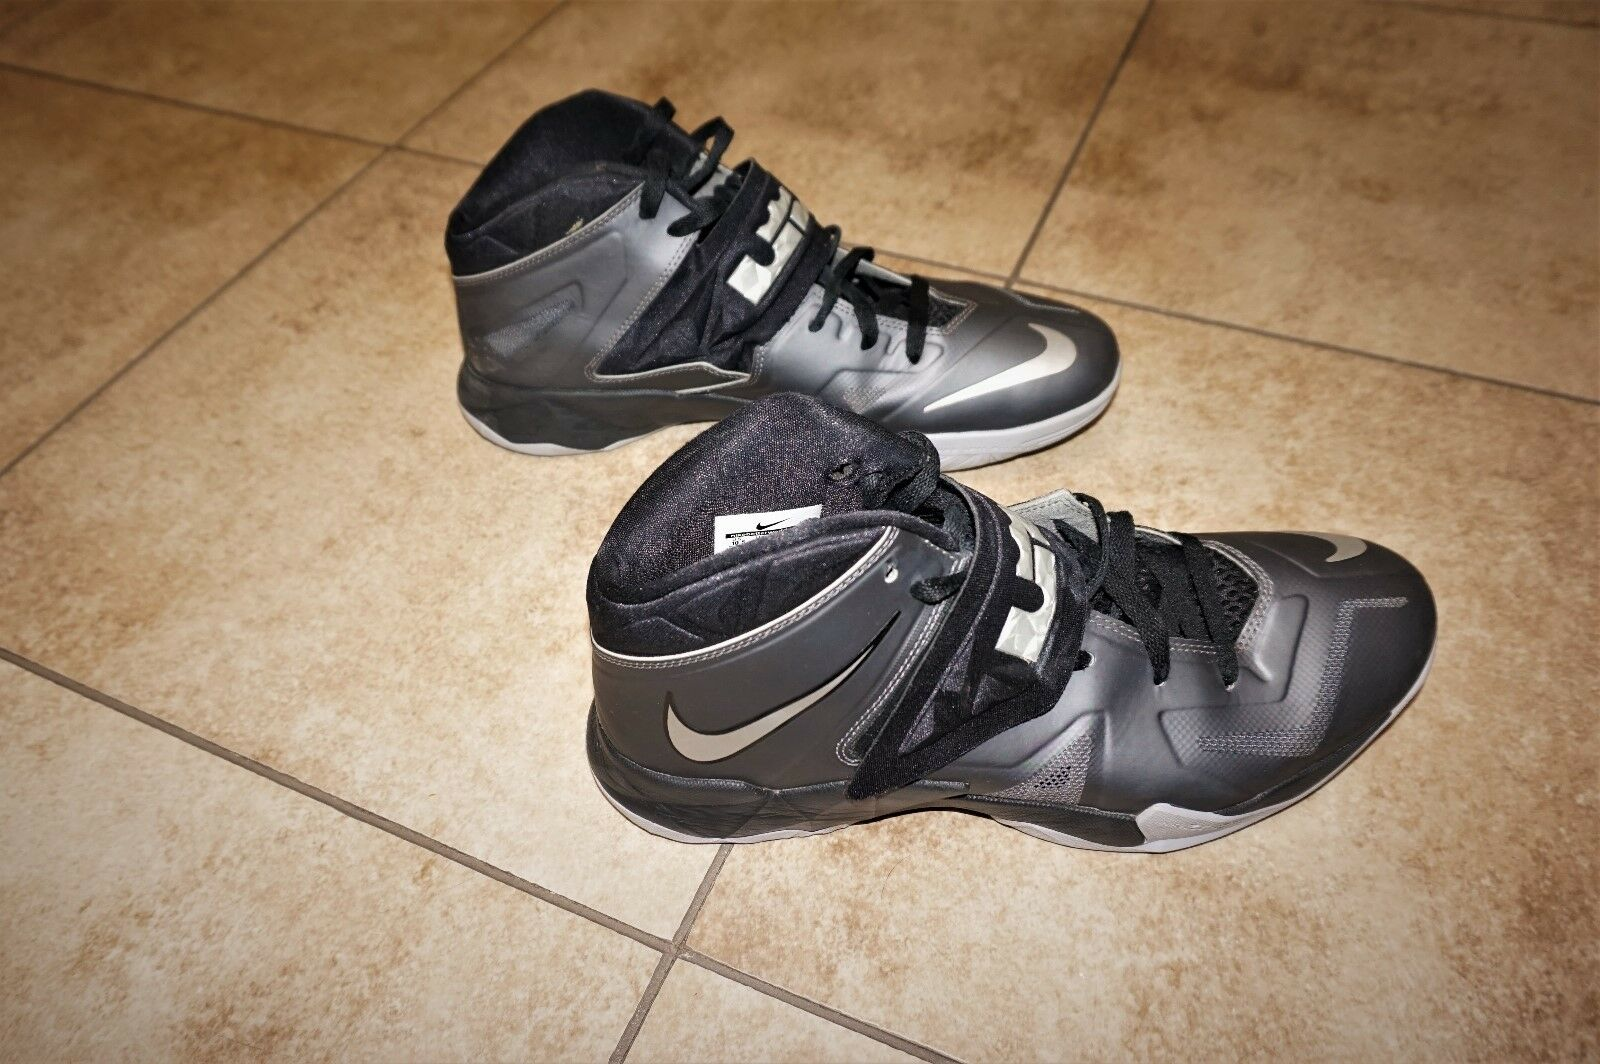 Nike Lebron James Zoom Air Soldier 7 Running Basketball Shoes Uomo Size 10.5